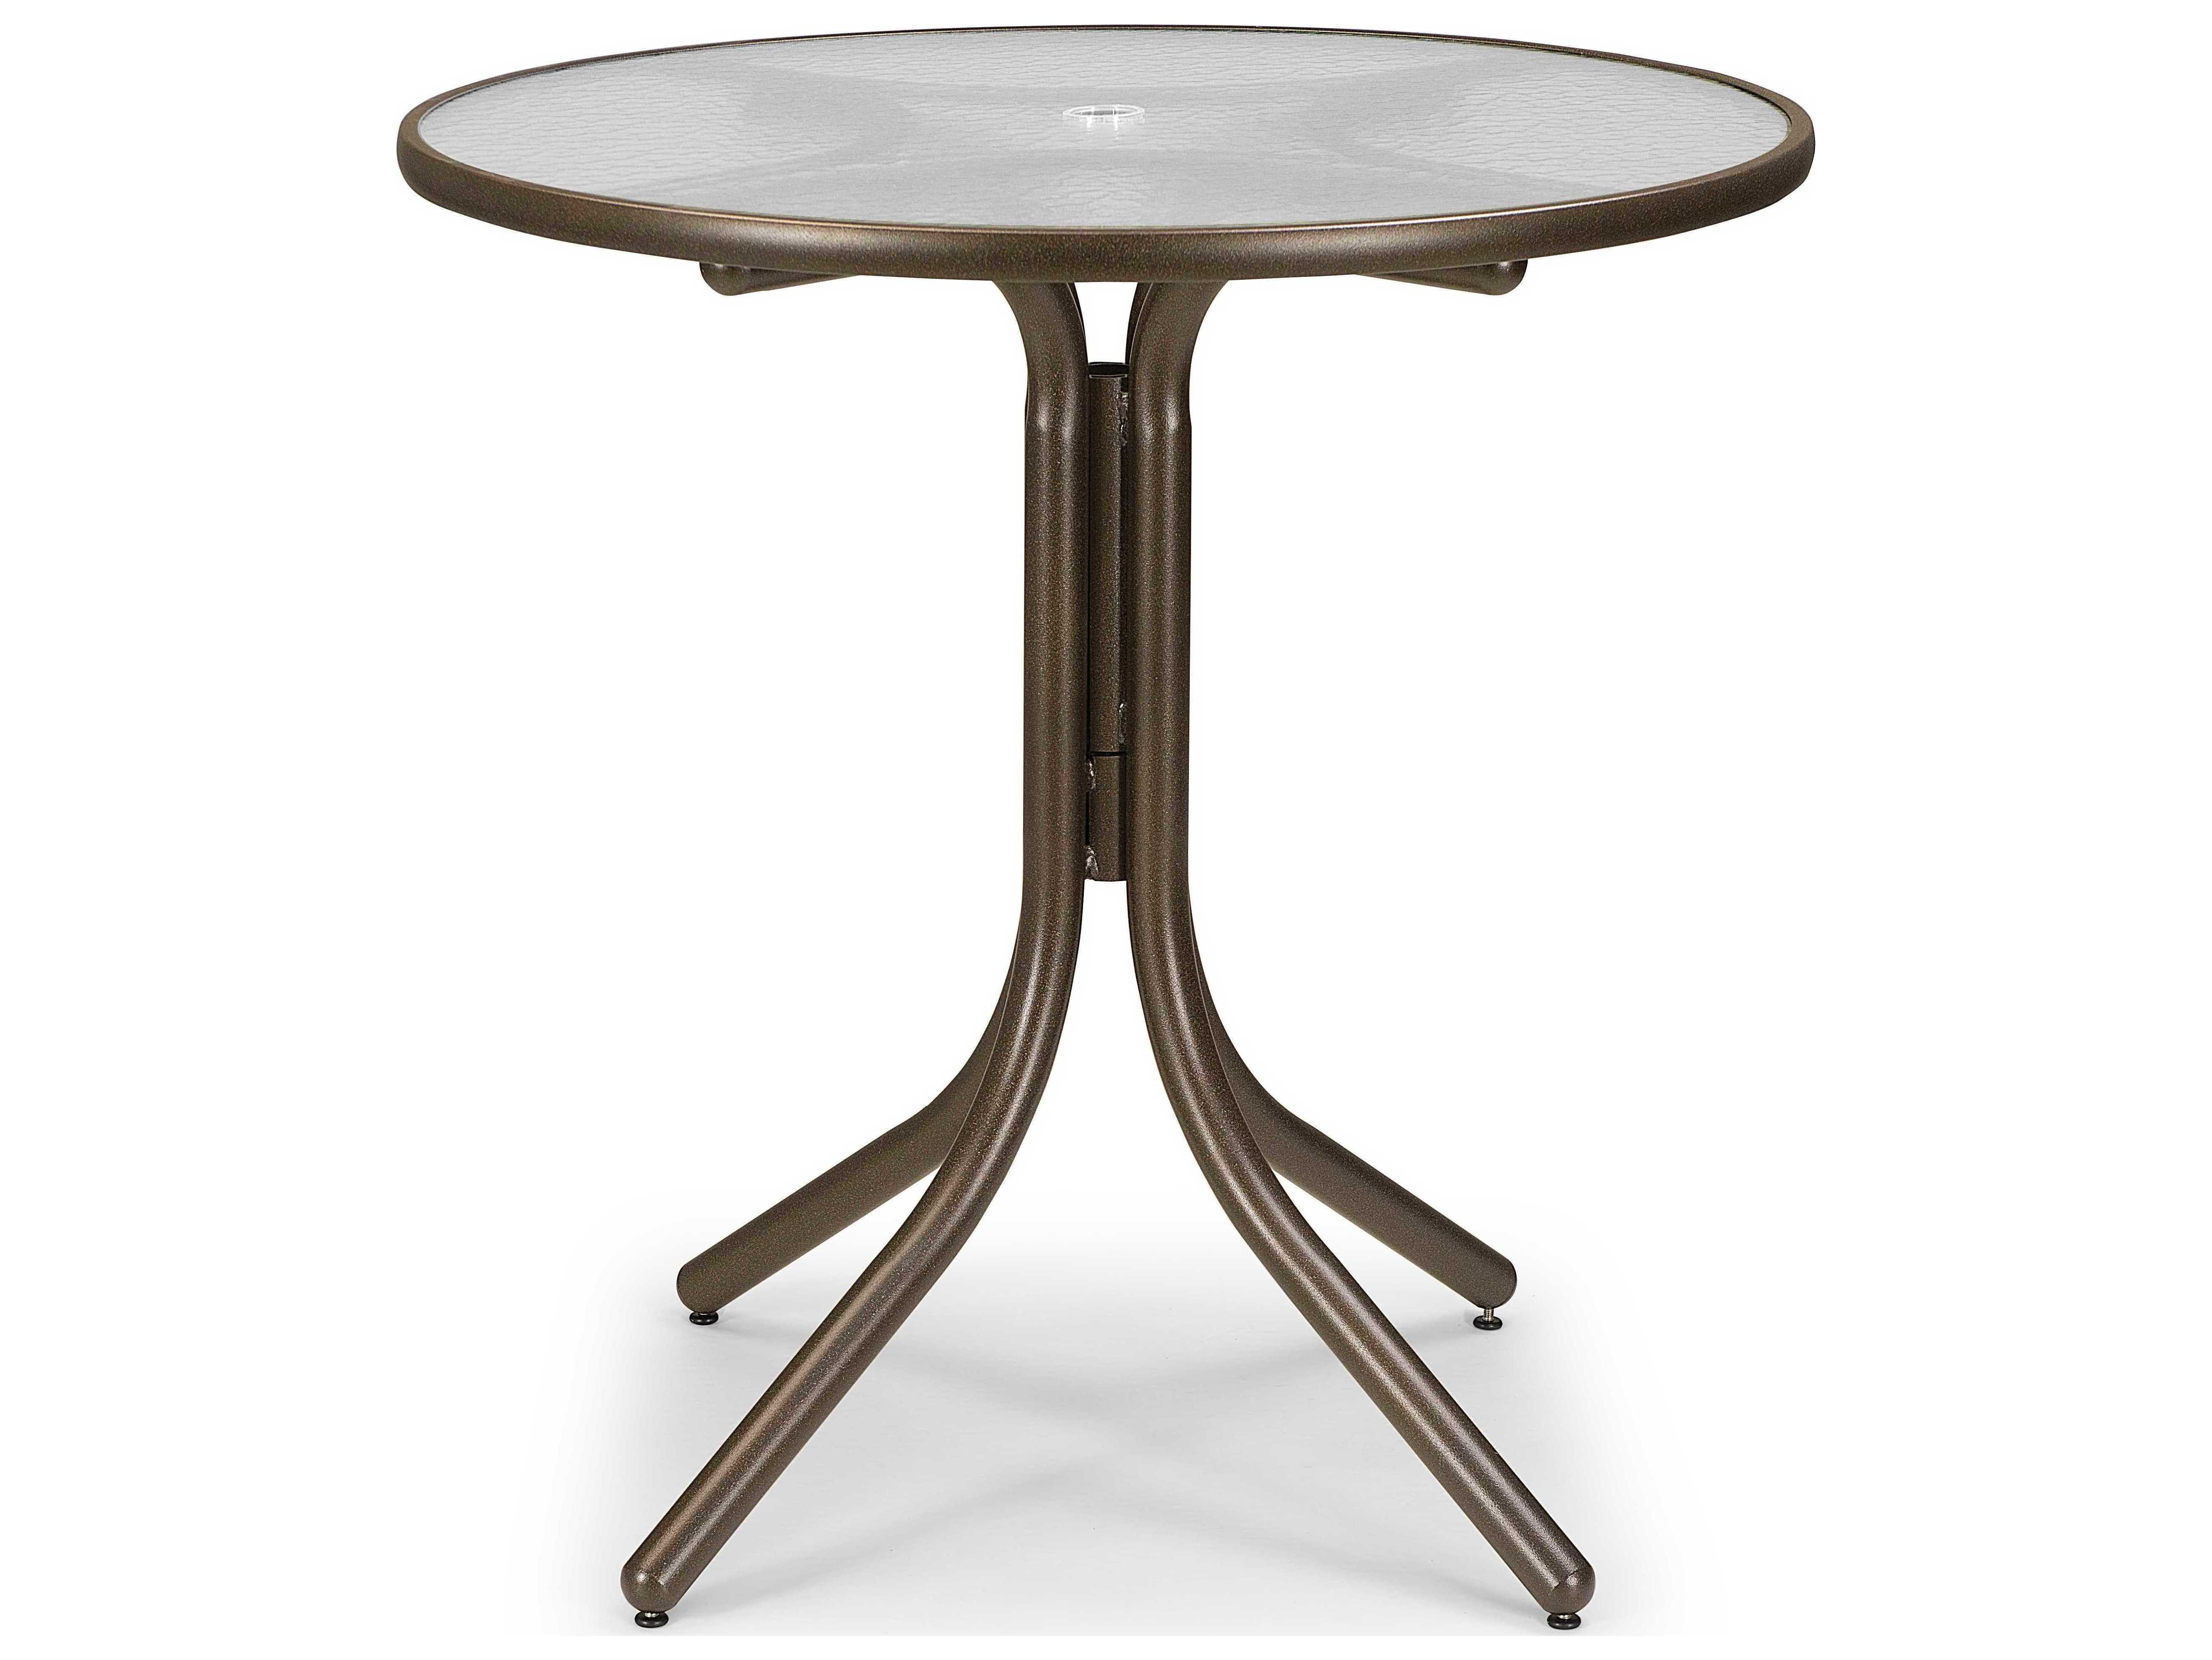 Table Height 36: Telescope Casual Glass 36'' Round Balcony Height Table